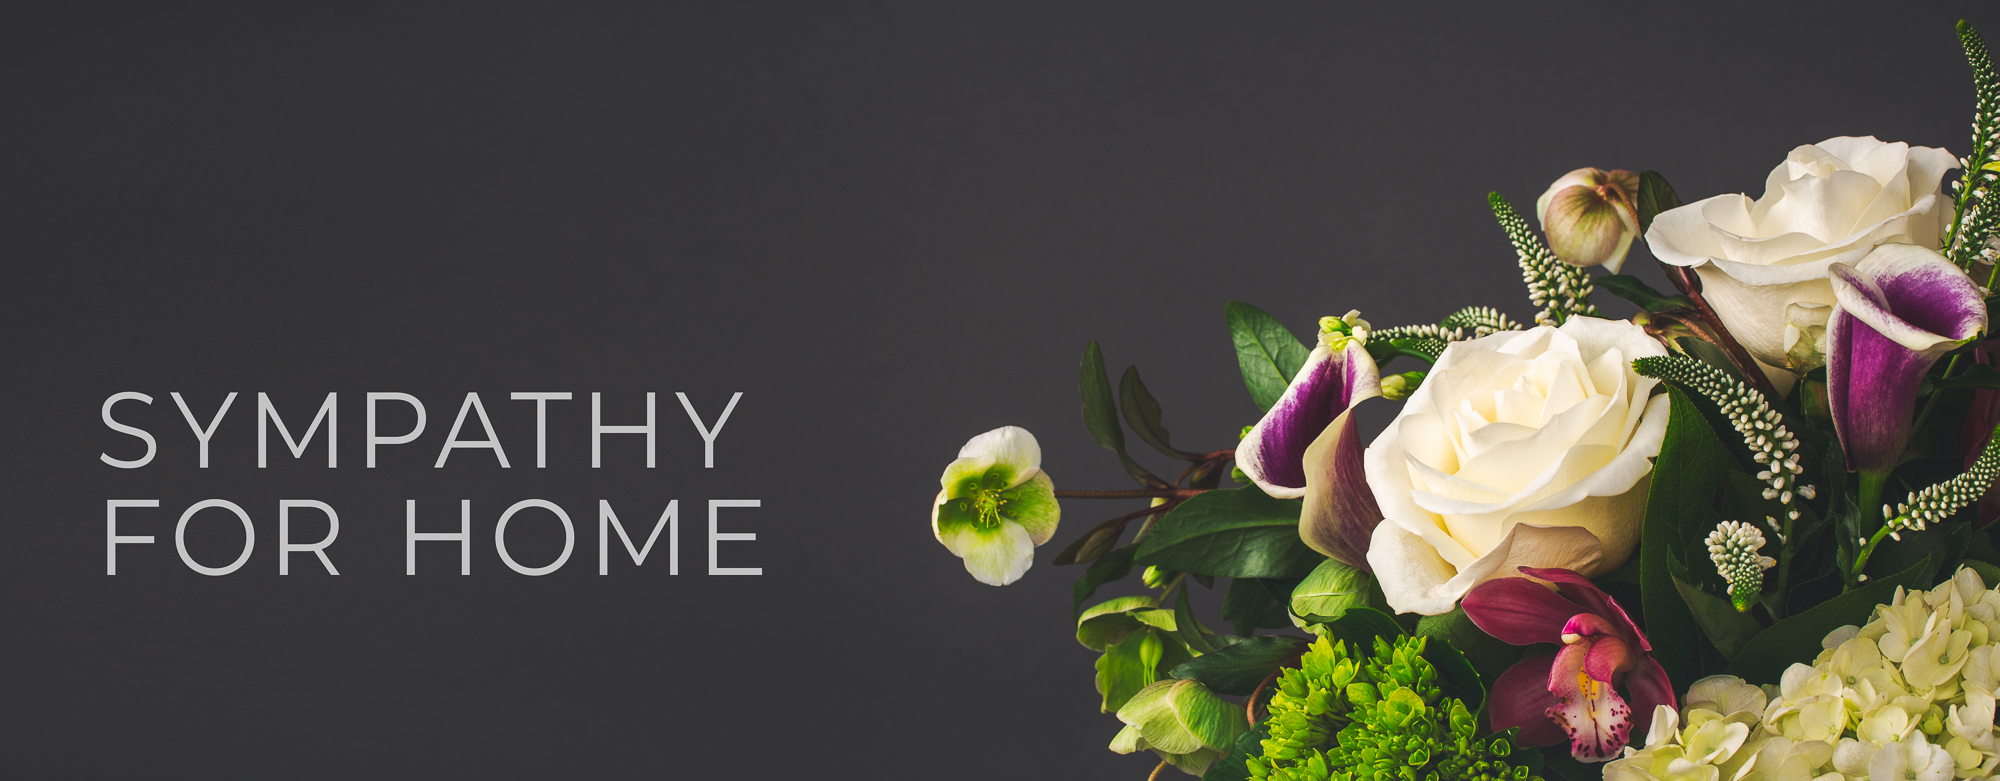 sympathy for home header